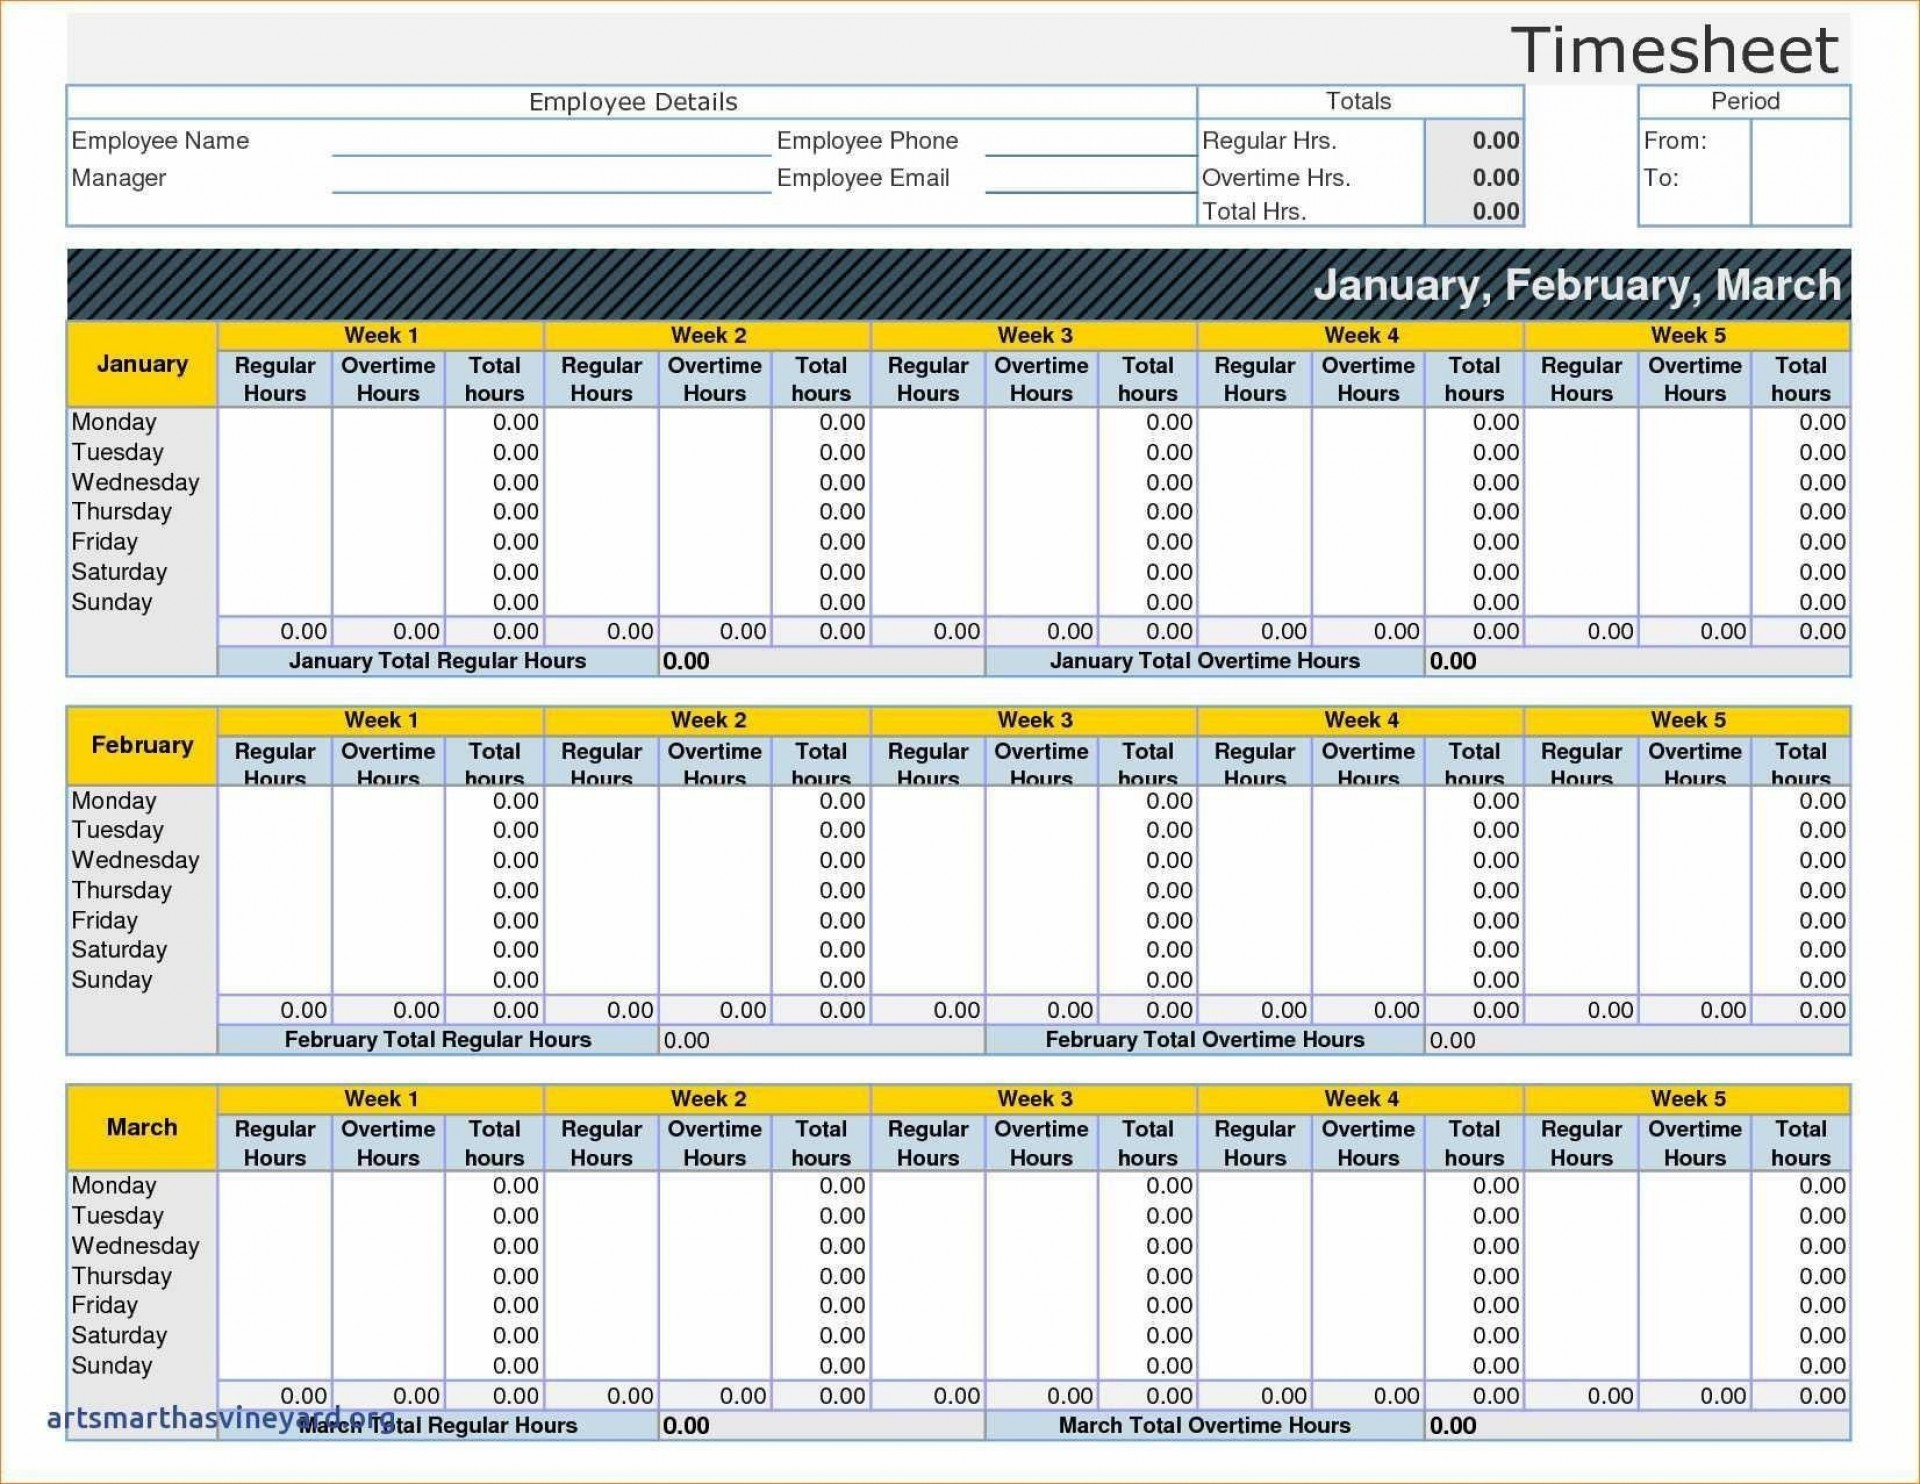 004 Exceptional Monthly Timesheet Excel Template Image  Multiple Employee Free Semi-monthly 20201920